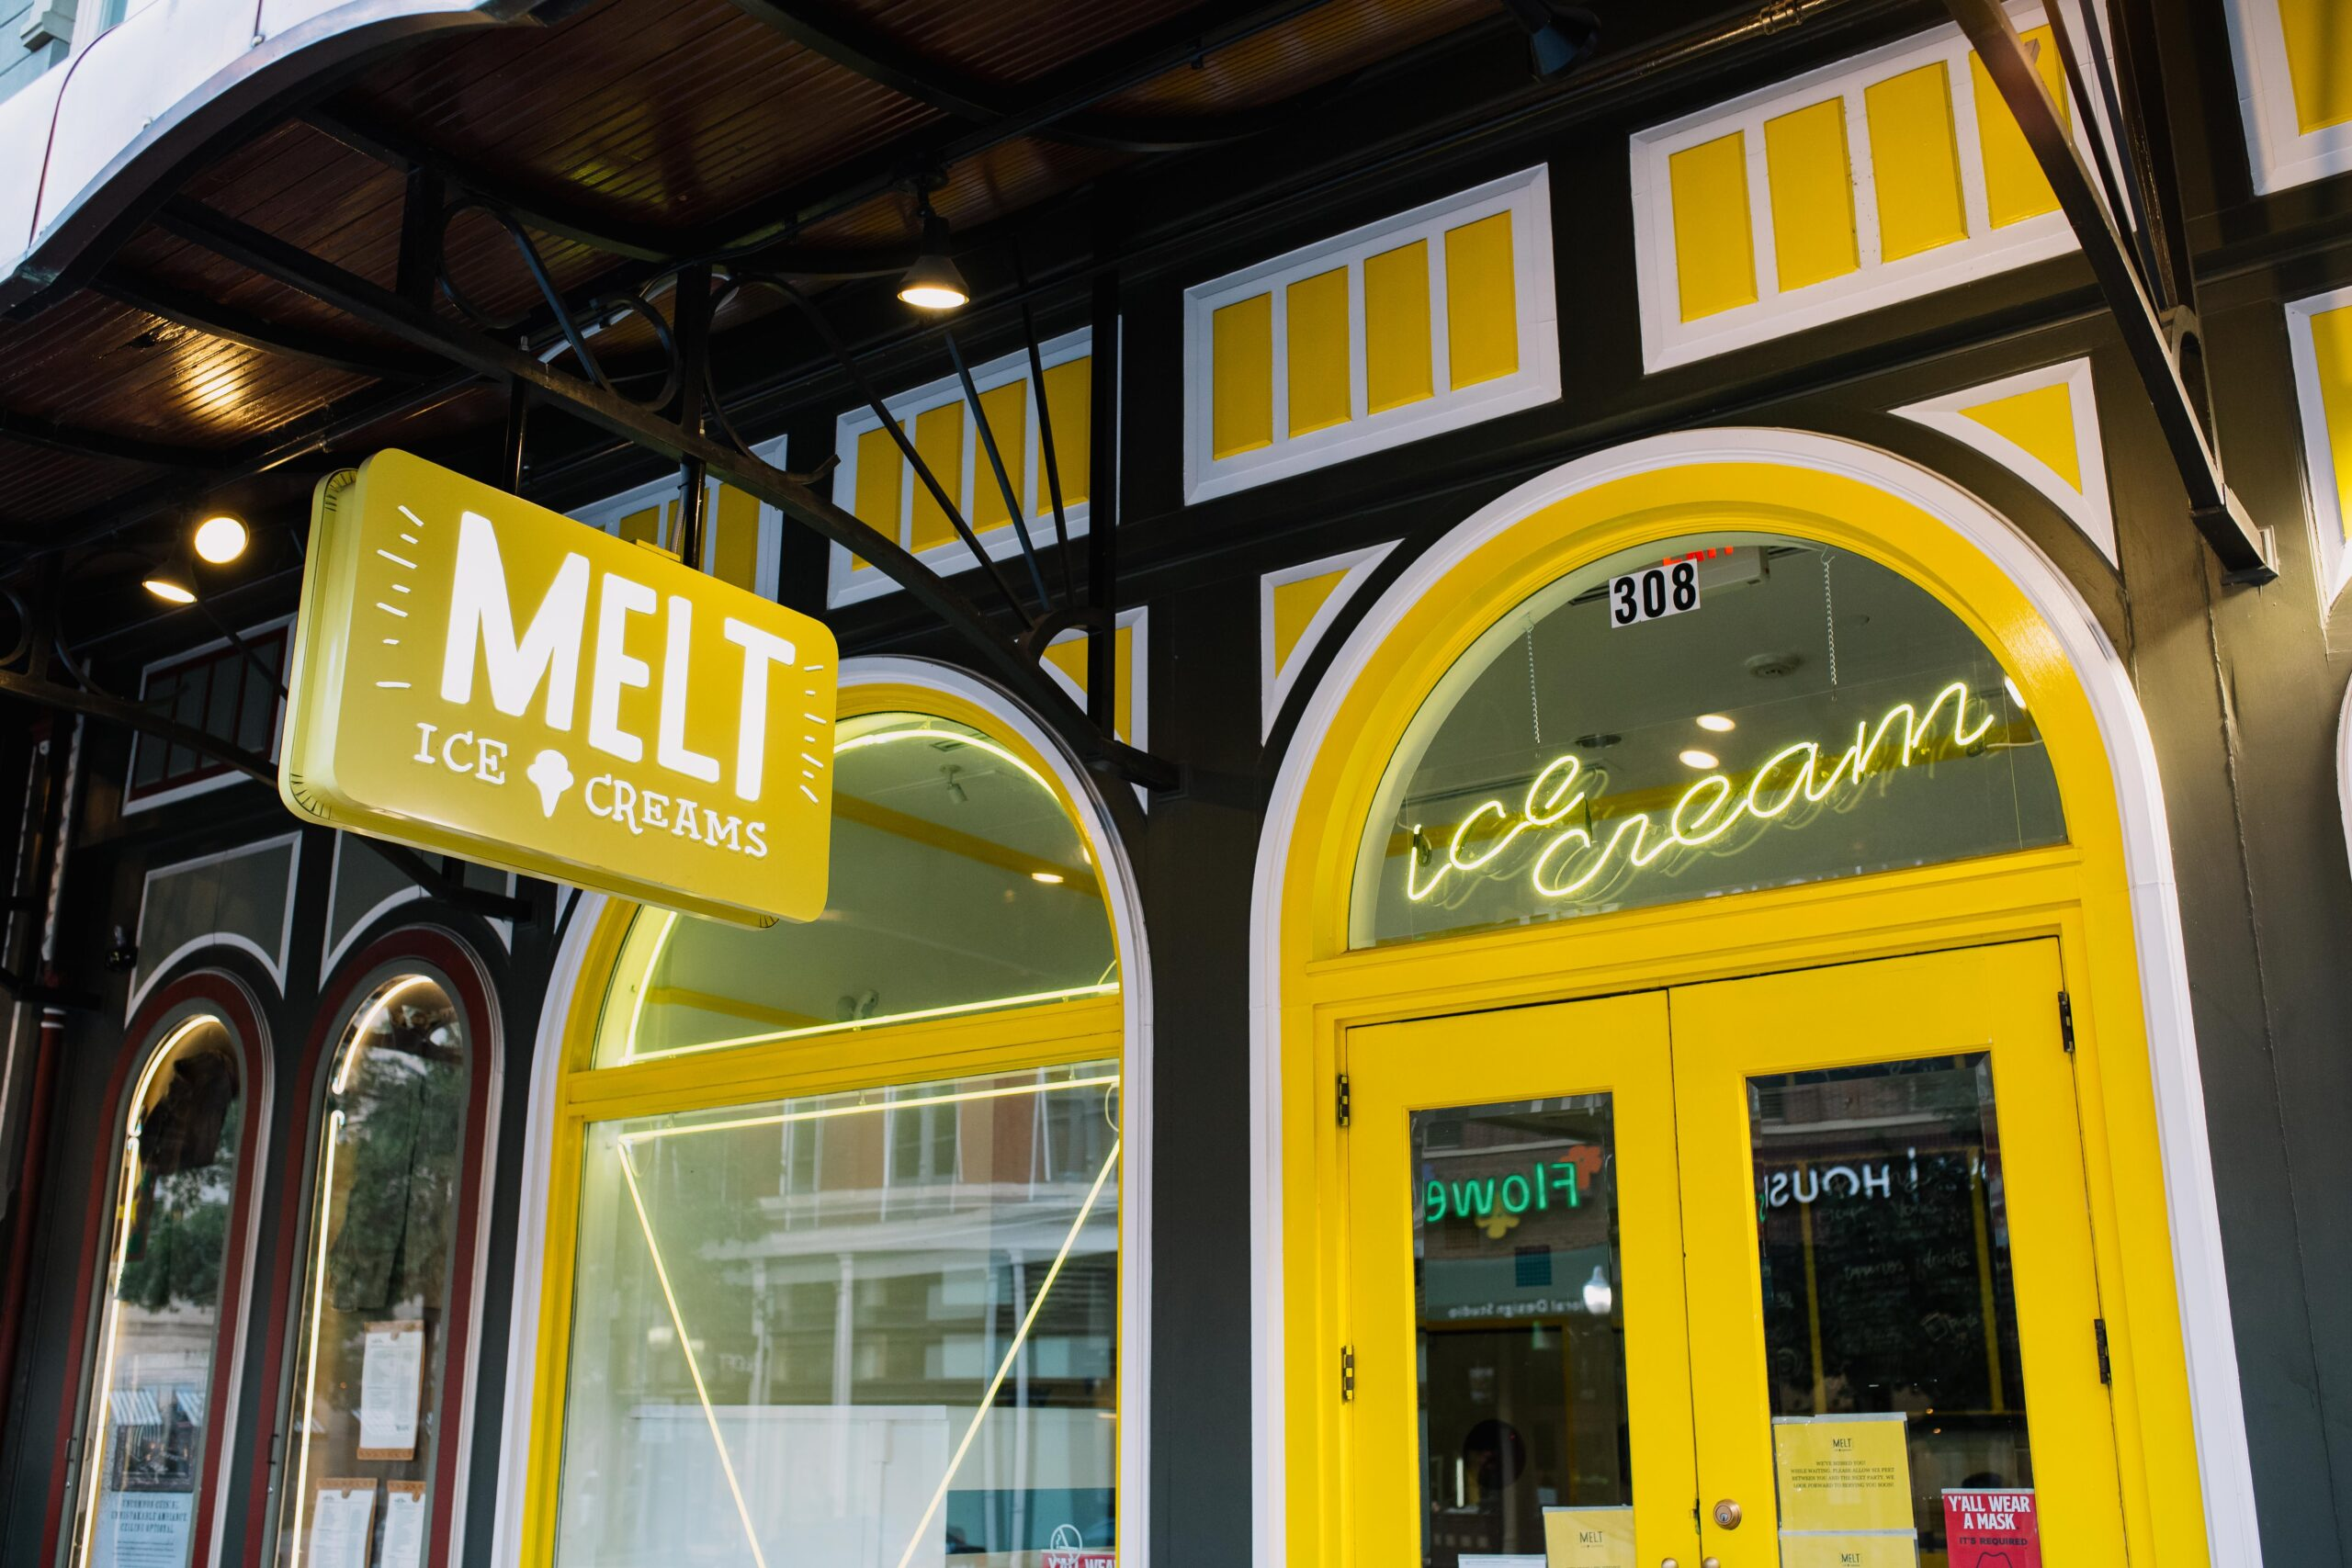 Mule Alley Welcomes MELT Ice Creams!